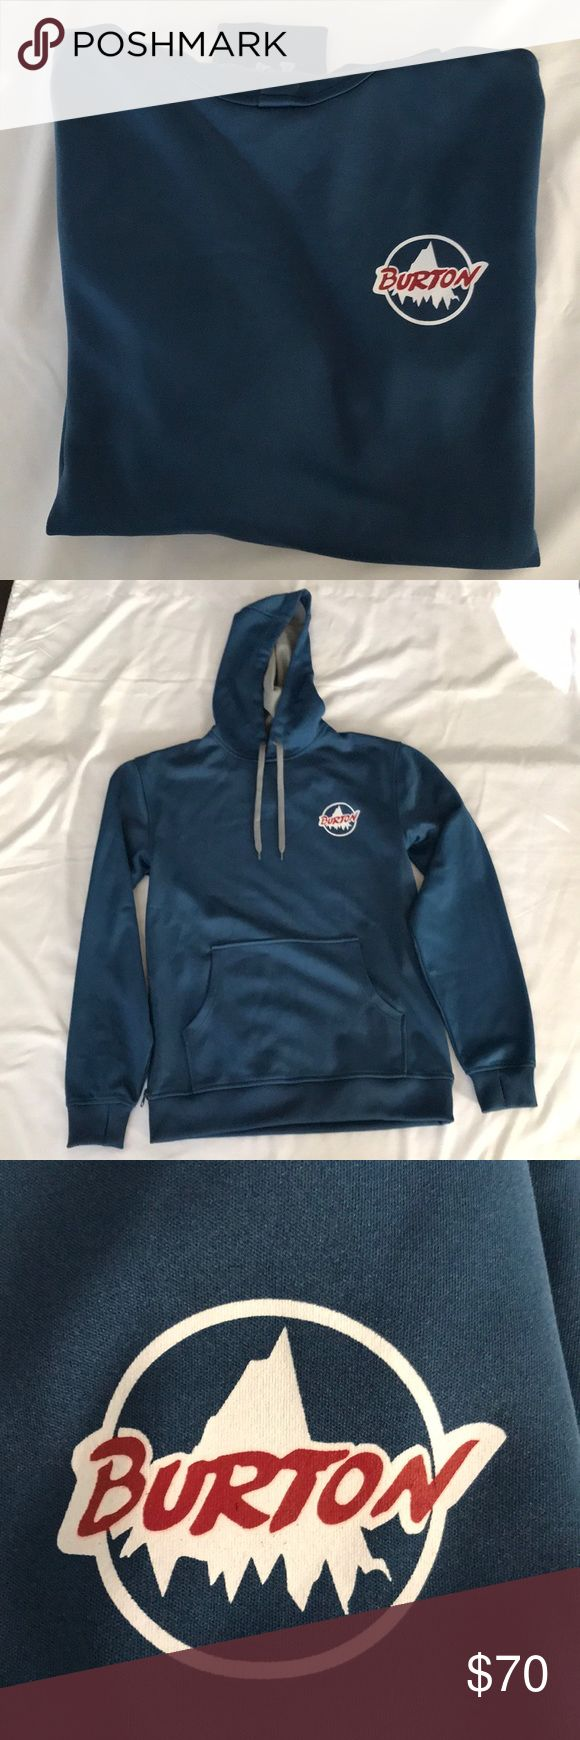 Burton Snowboarding Hoodie Sweatshirt Men Small Burton DryRide Snowboarding Hoodie Sweatshirt Men Small. Front pocket plus an extra zip pocket on right side. Holes for thumbs on sleeve. Only worn once. Excellent condition. This is an amazing Sweatshirt. Very nice exterior and fleece lining. Extremely warm and comfy!! Burton Shirts Sweatshirts & Hoodies